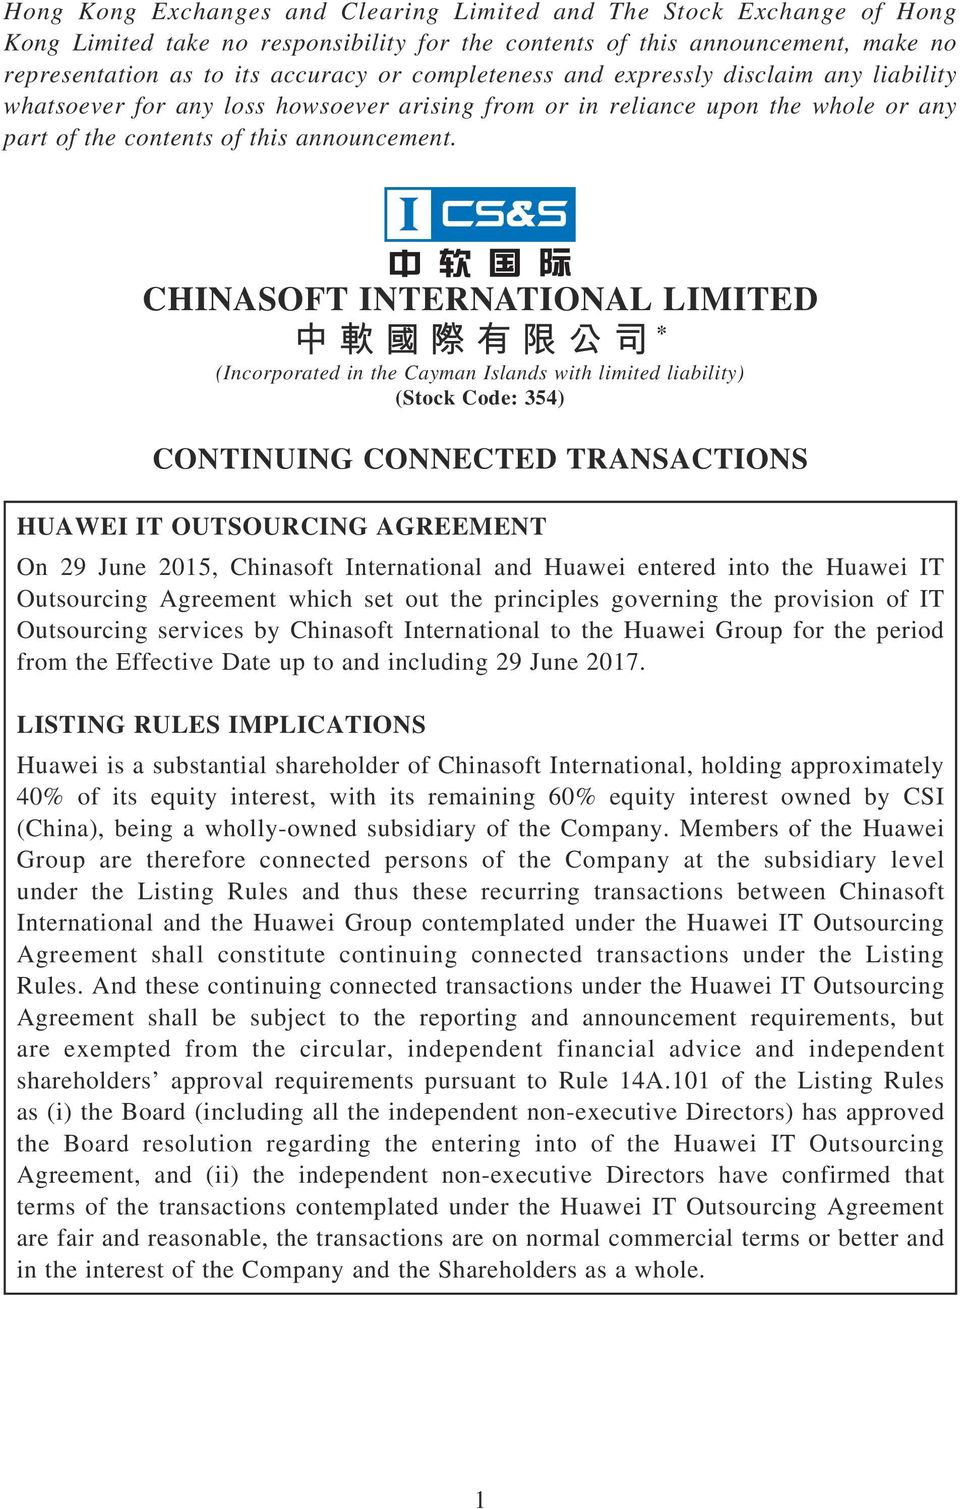 CHINASOFT INTERNATIONAL LIMITED 中 軟 國 際 有 限 公 司 * (Incorporated in the Cayman Islands with limited liability) (Stock Code: 354) CONTINUING CONNECTED TRANSACTIONS HUAWEI IT OUTSOURCING AGREEMENT On 29